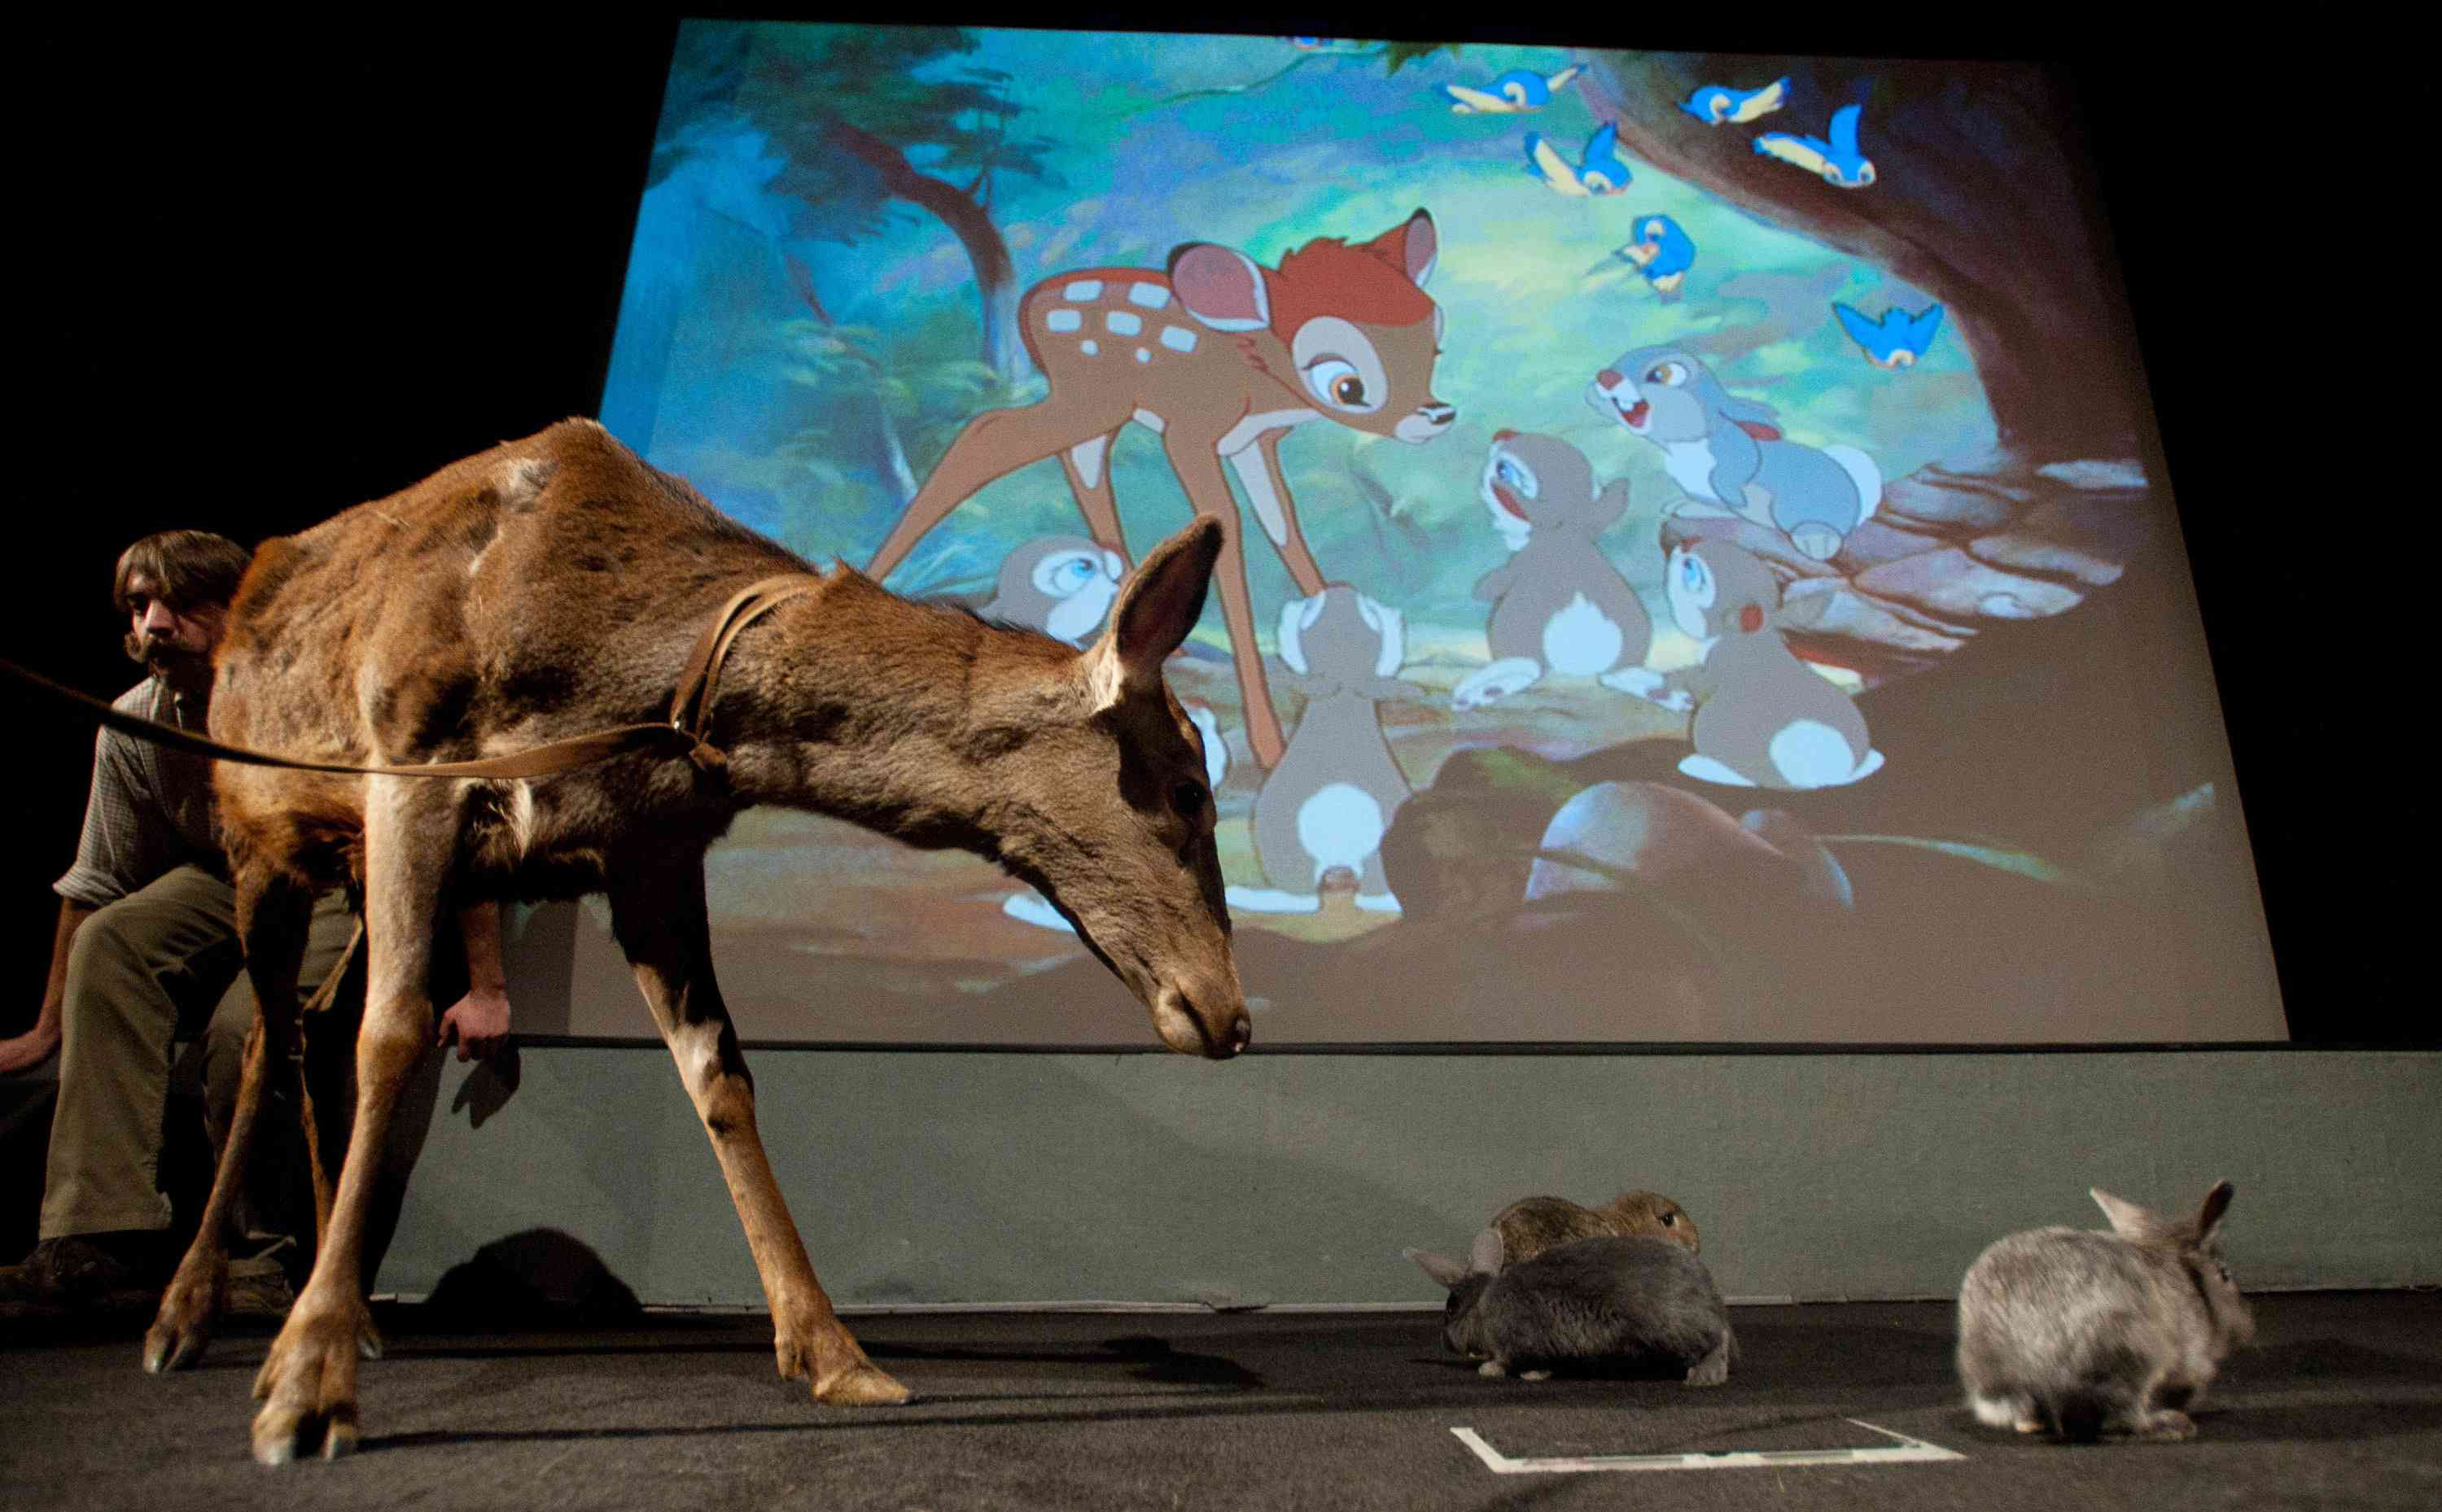 A deer and rabbits in front of a projection of the movie Bambie